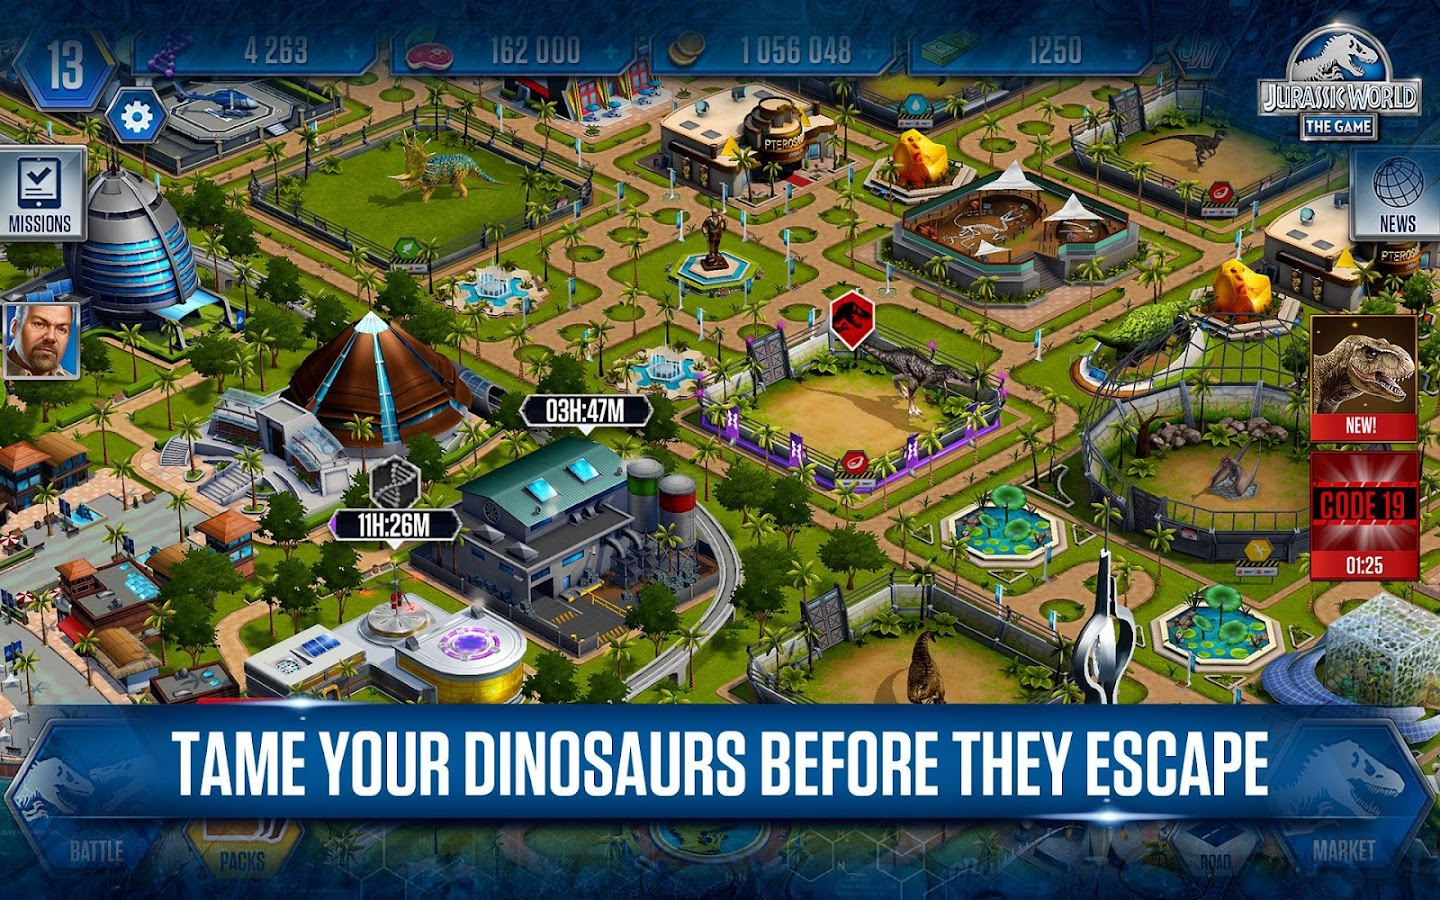 download jurassic world the game mod apk 1.24.1